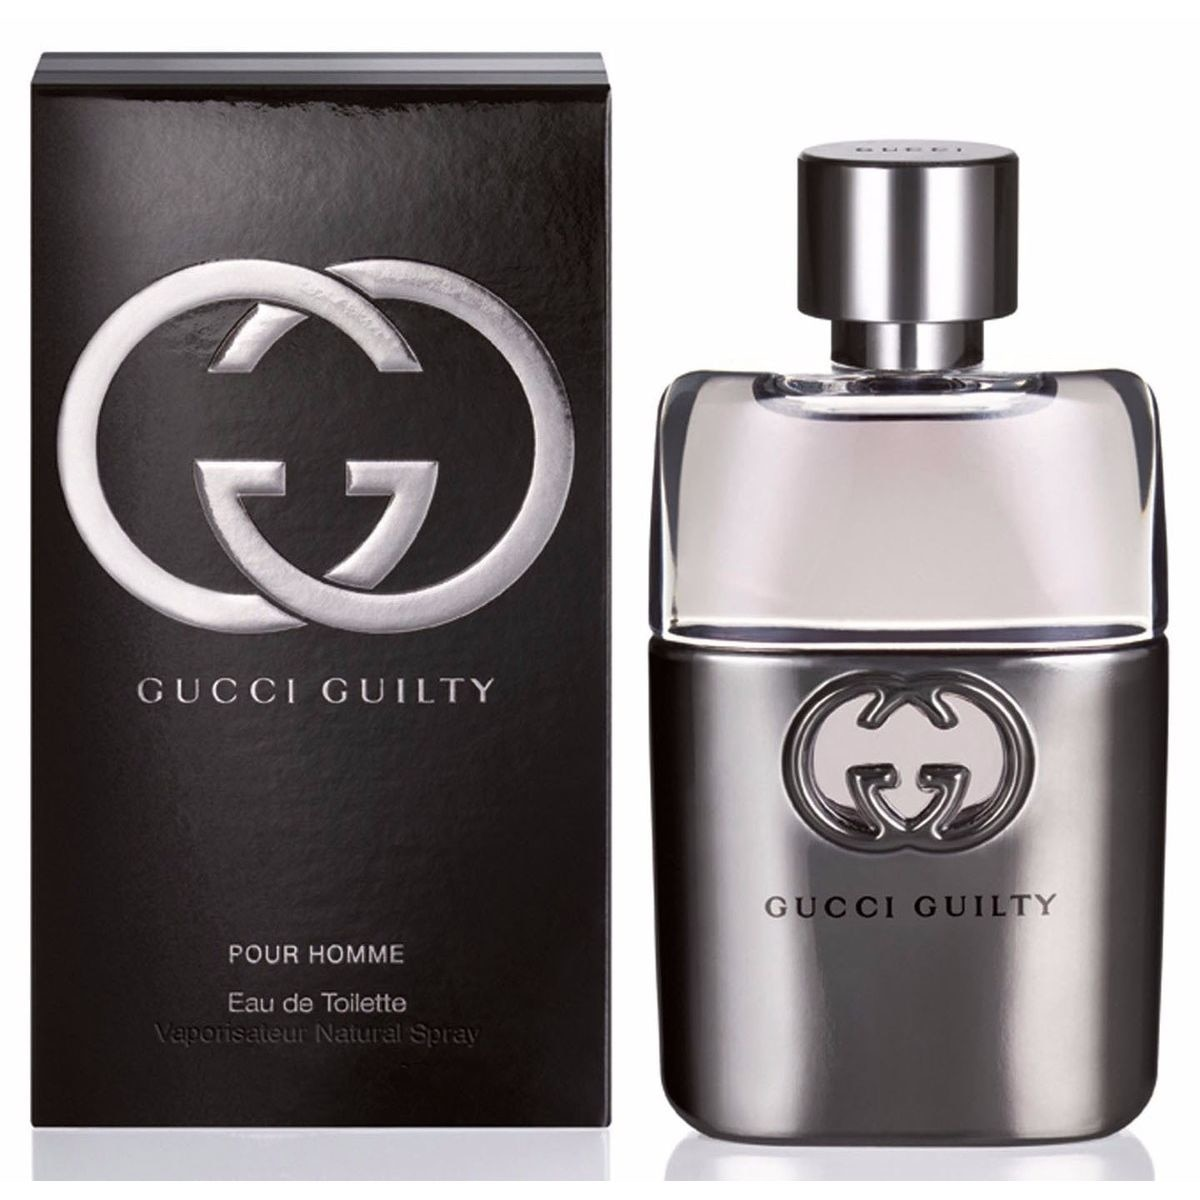 GUILTY POR HOMME EAU DE TOILETTE 90ML